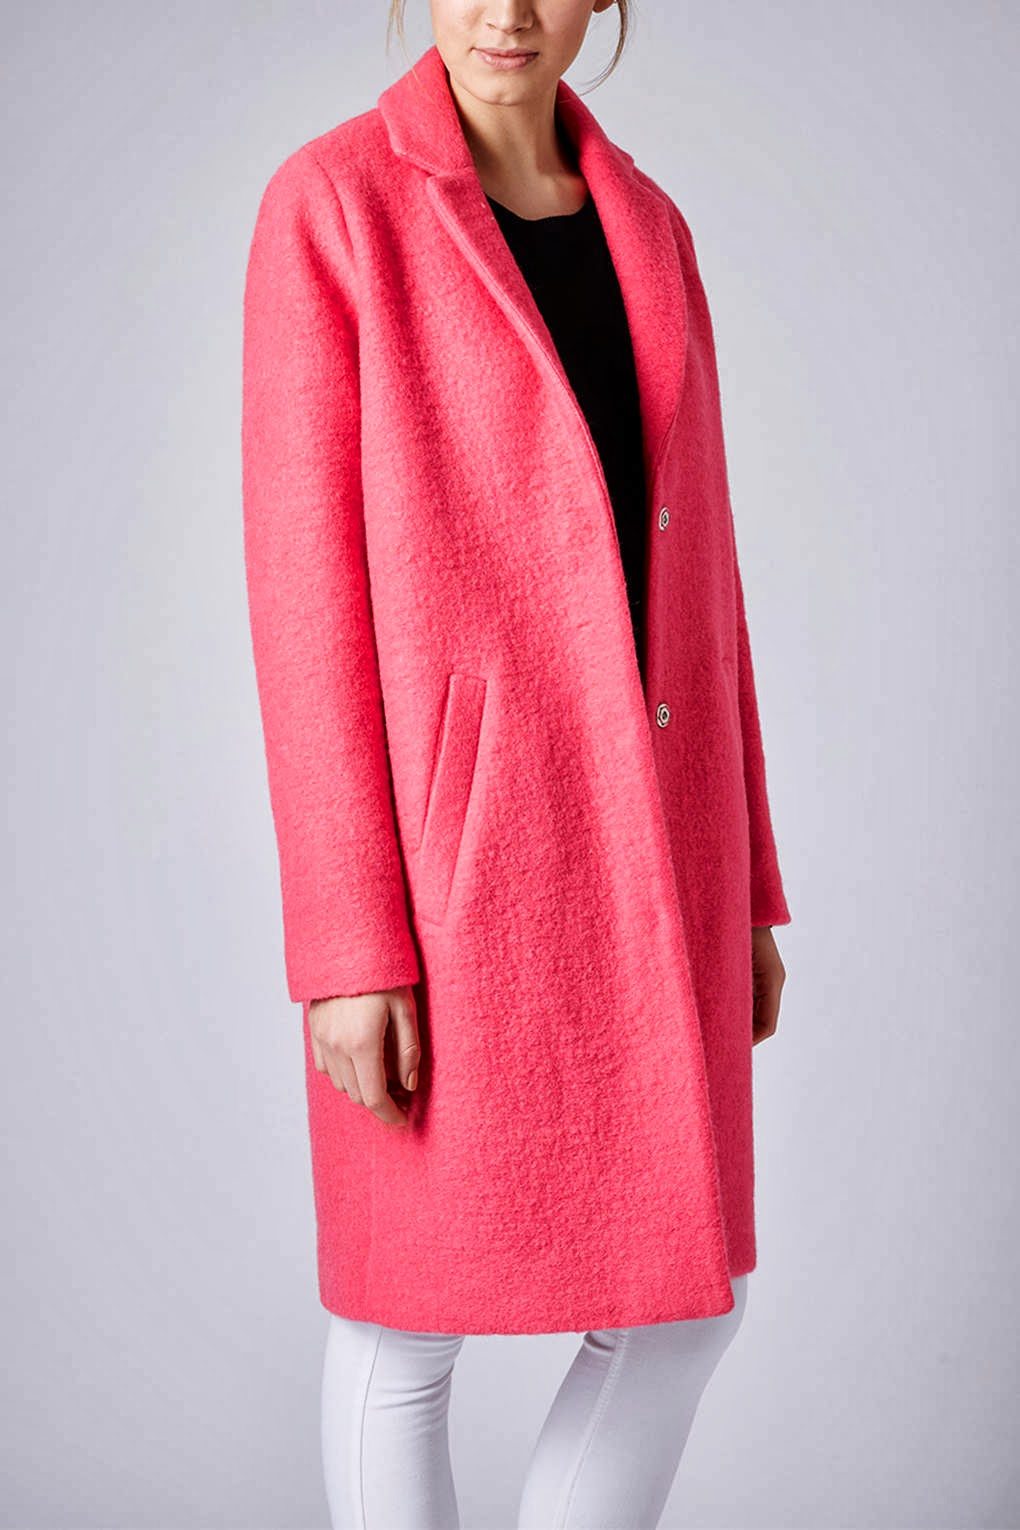 topshop bright pink coat